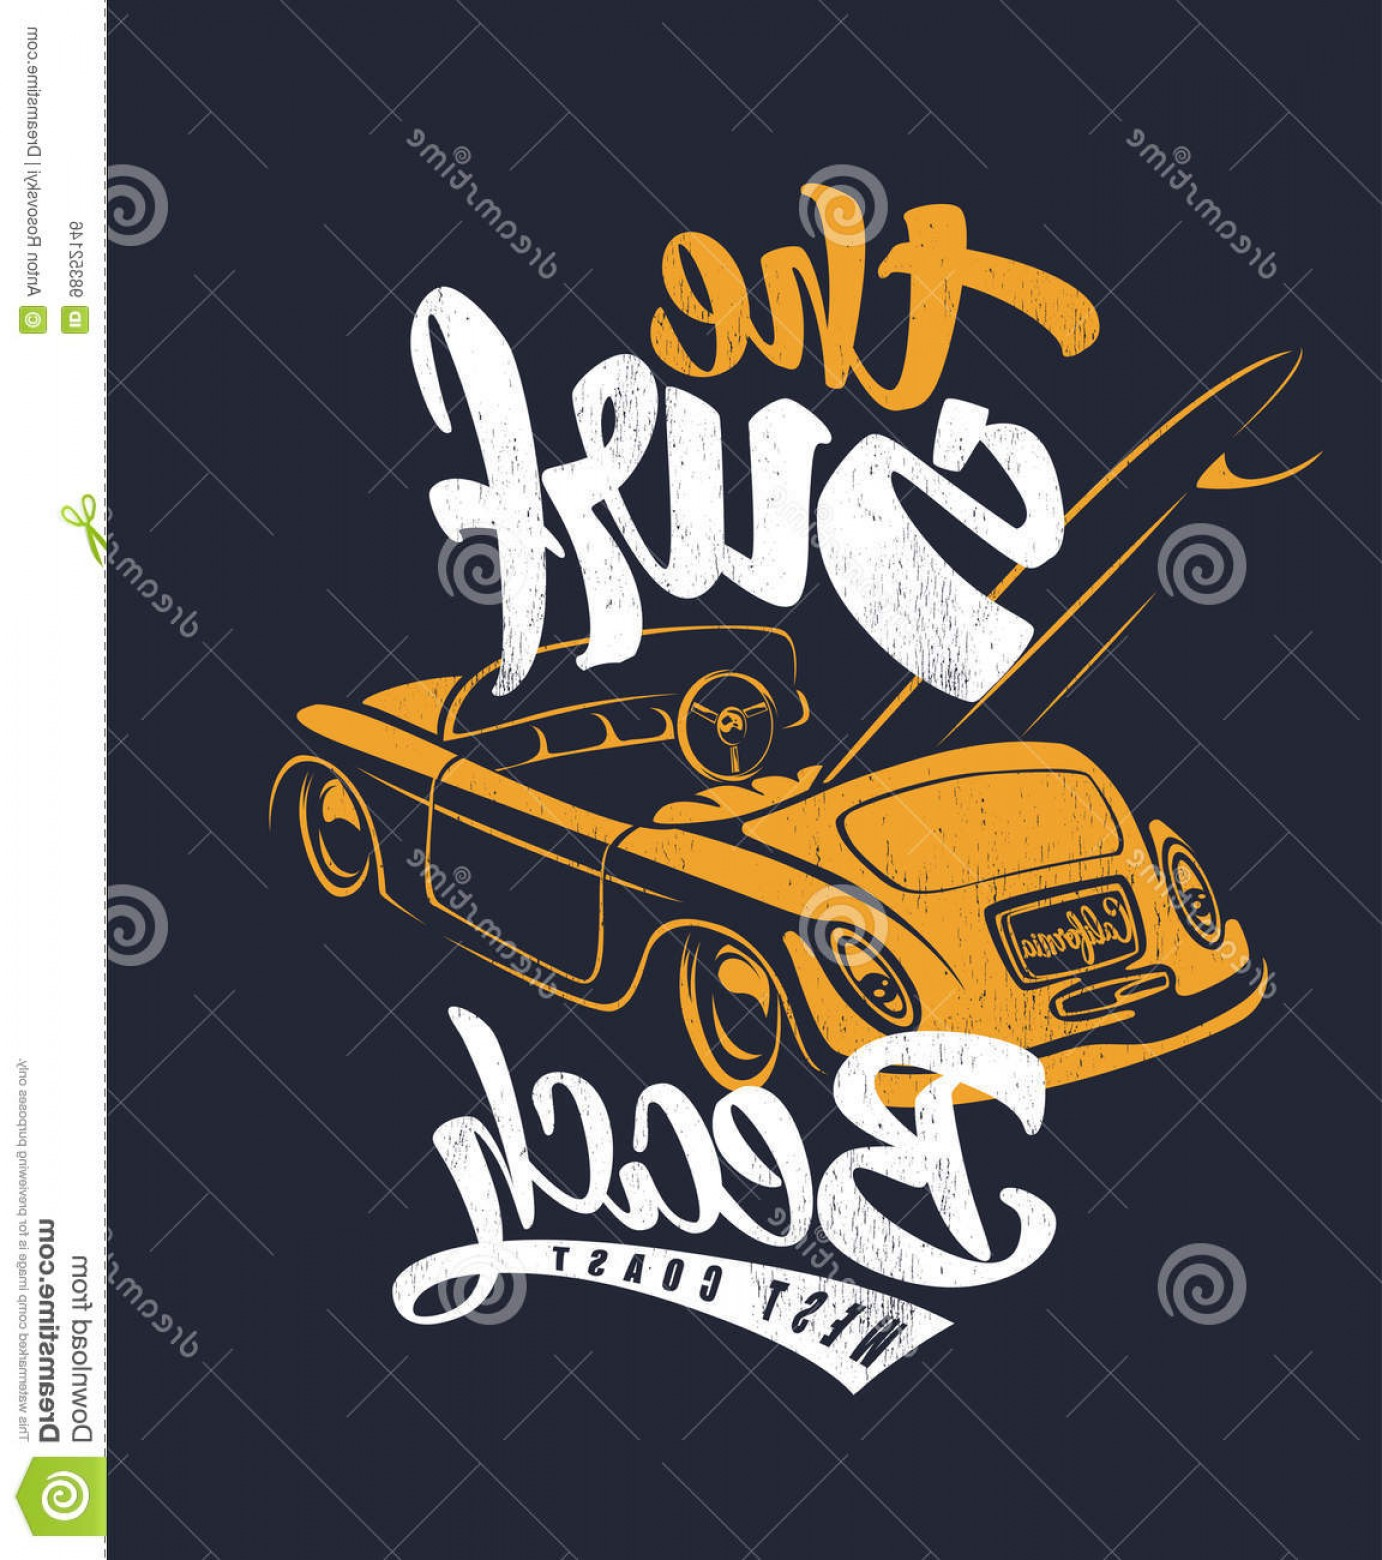 California Lifestyle Vector: Stock Illustration Summer Surf Print Car Lettering Vector Illustartion Image